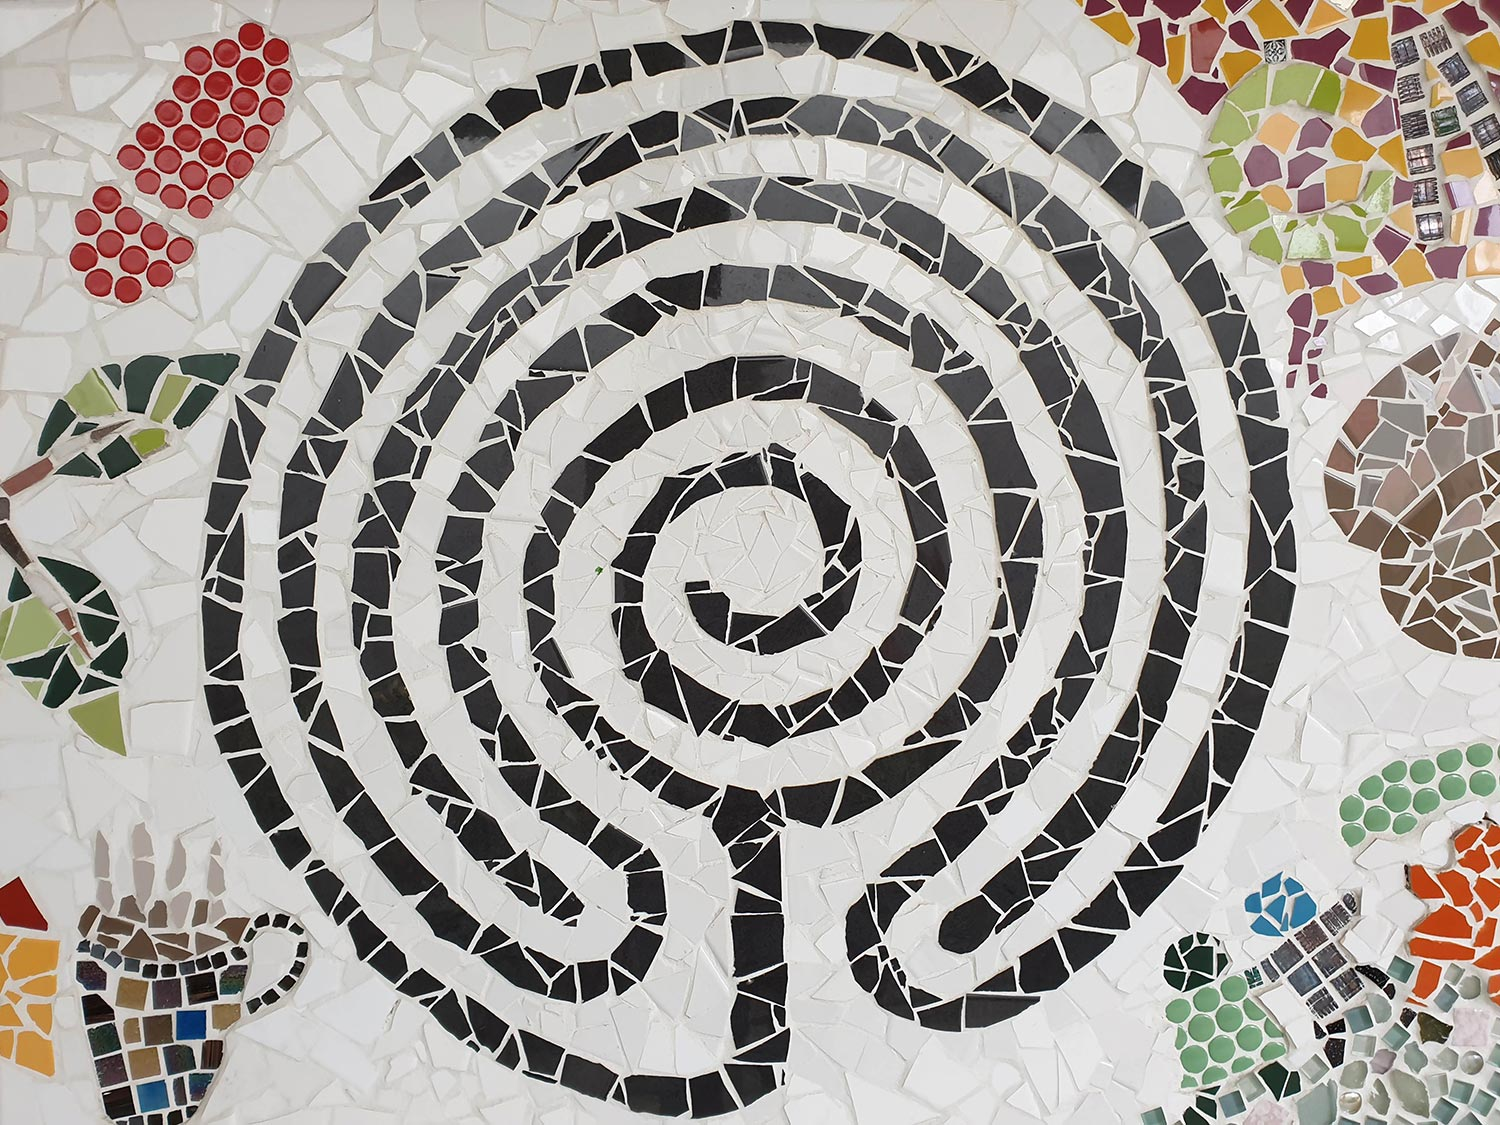 Detail of Jesmond Park UCA mosaic mural showing labyrinth design